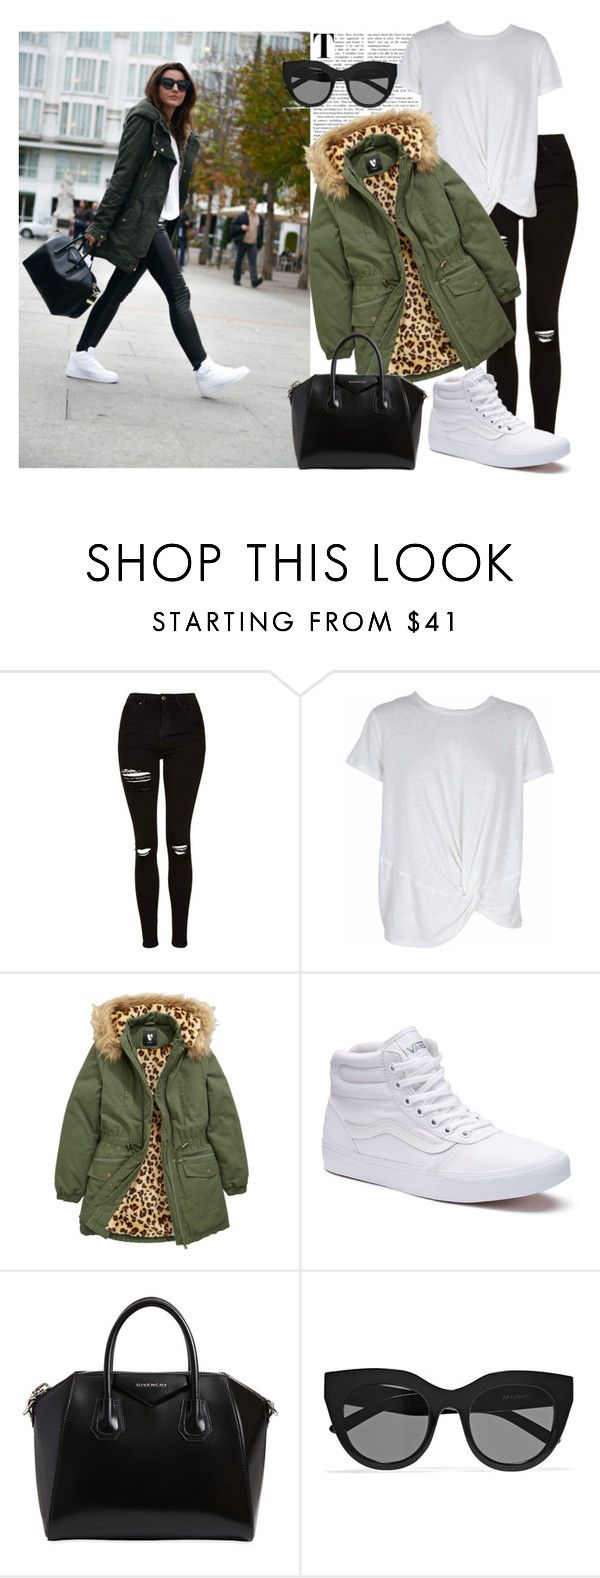 """""""Pretty Puffer Jacket"""" by burnettse ❤ liked on Polyvore featuring Topshop, MINKPINK, Vans, Givenchy and Le Specs"""